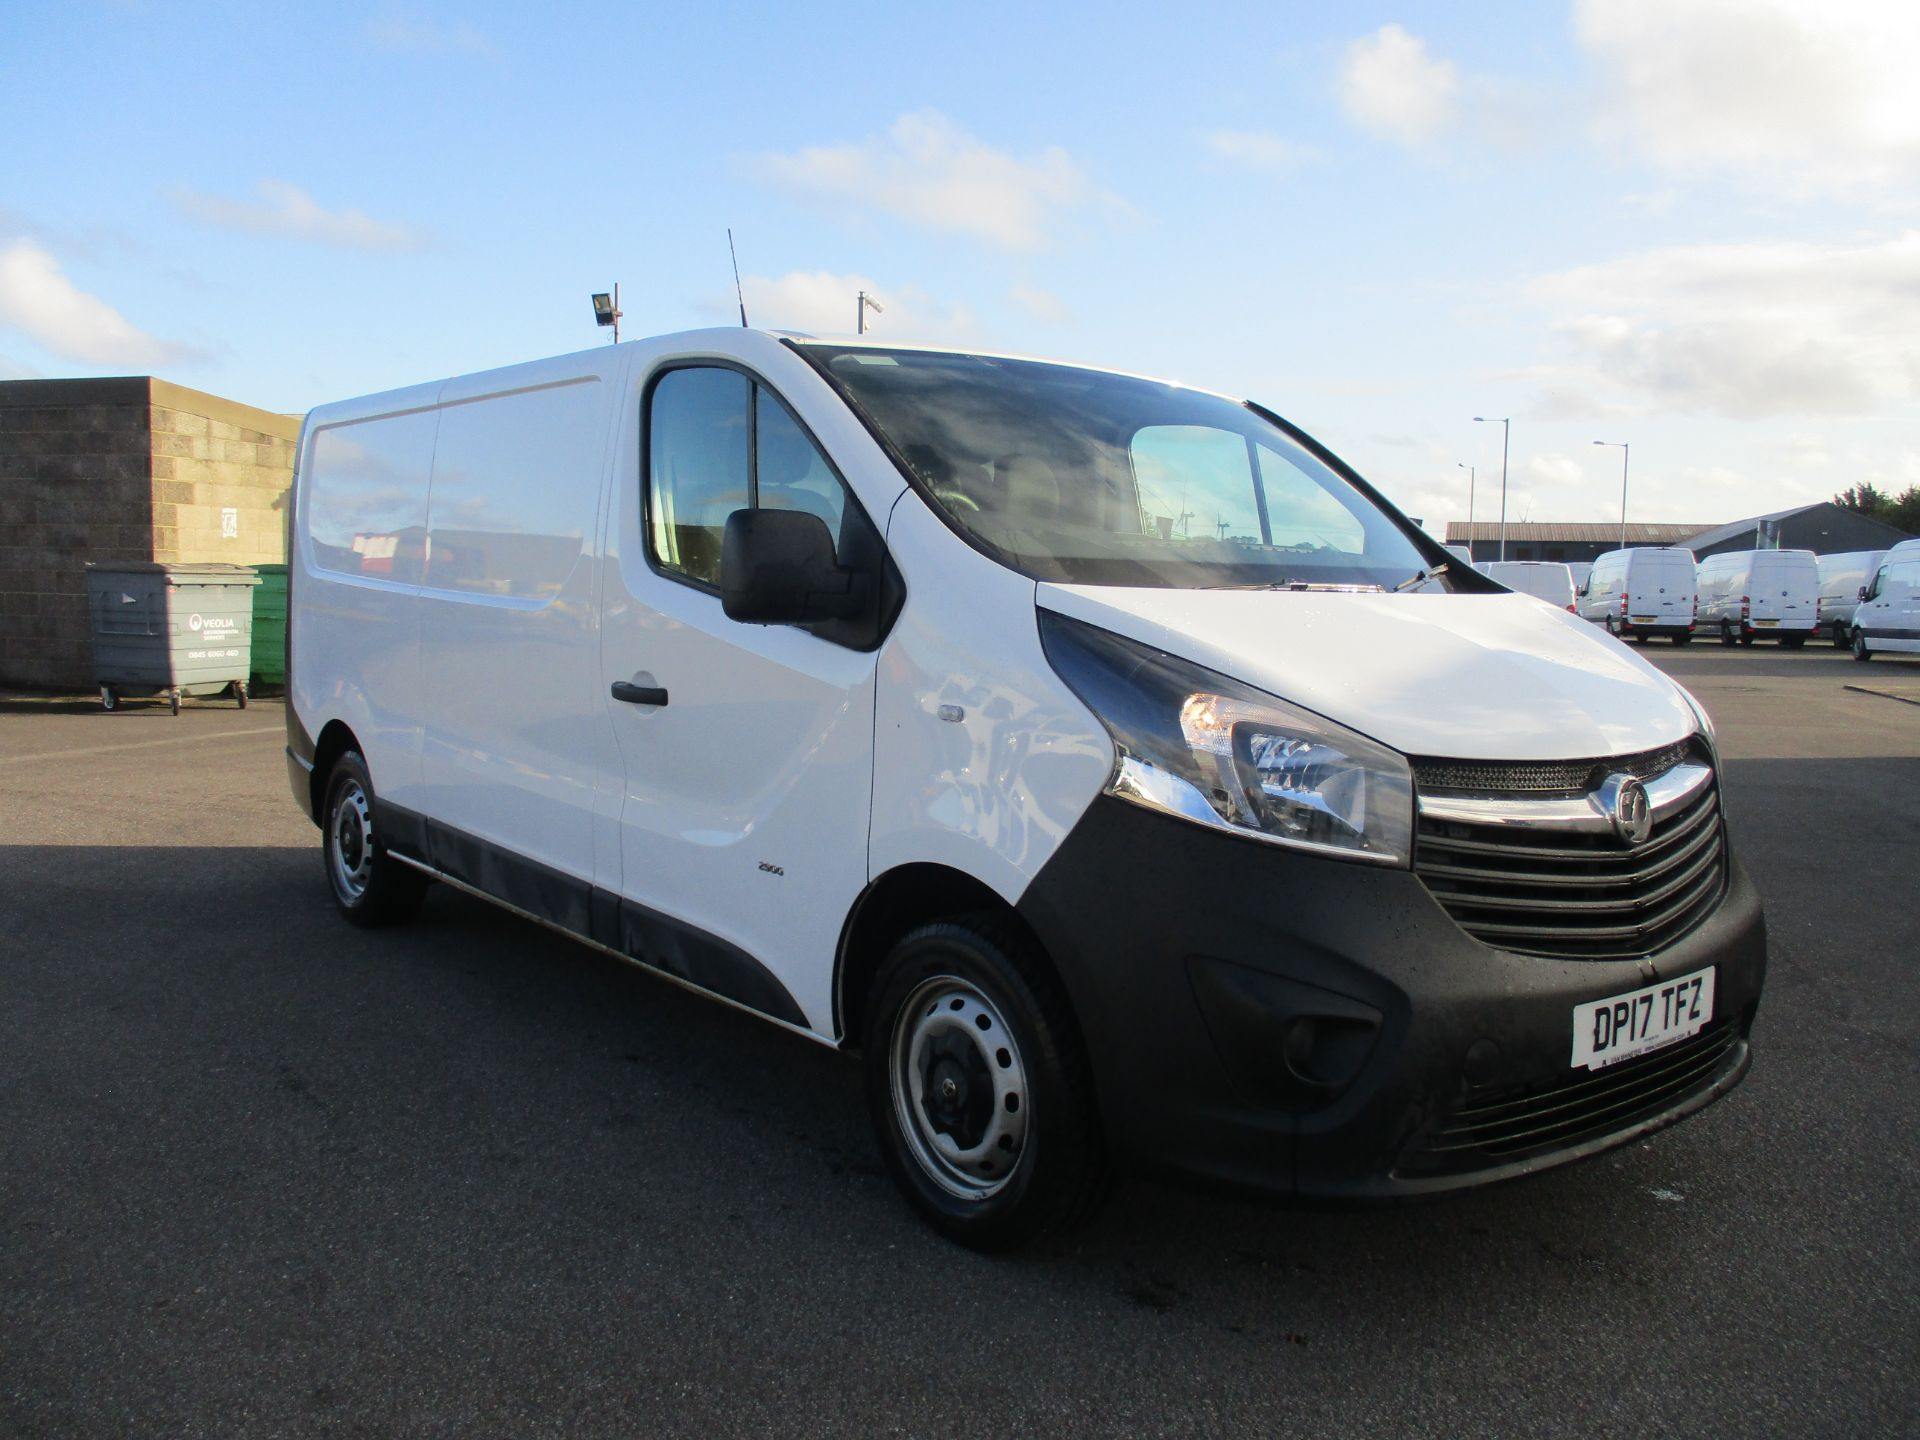 2017 Vauxhall Vivaro L2 H1 2900 1.6 CDTI 120PS EURO 6. VERY LOW MILEAGE (DP17TFZ)